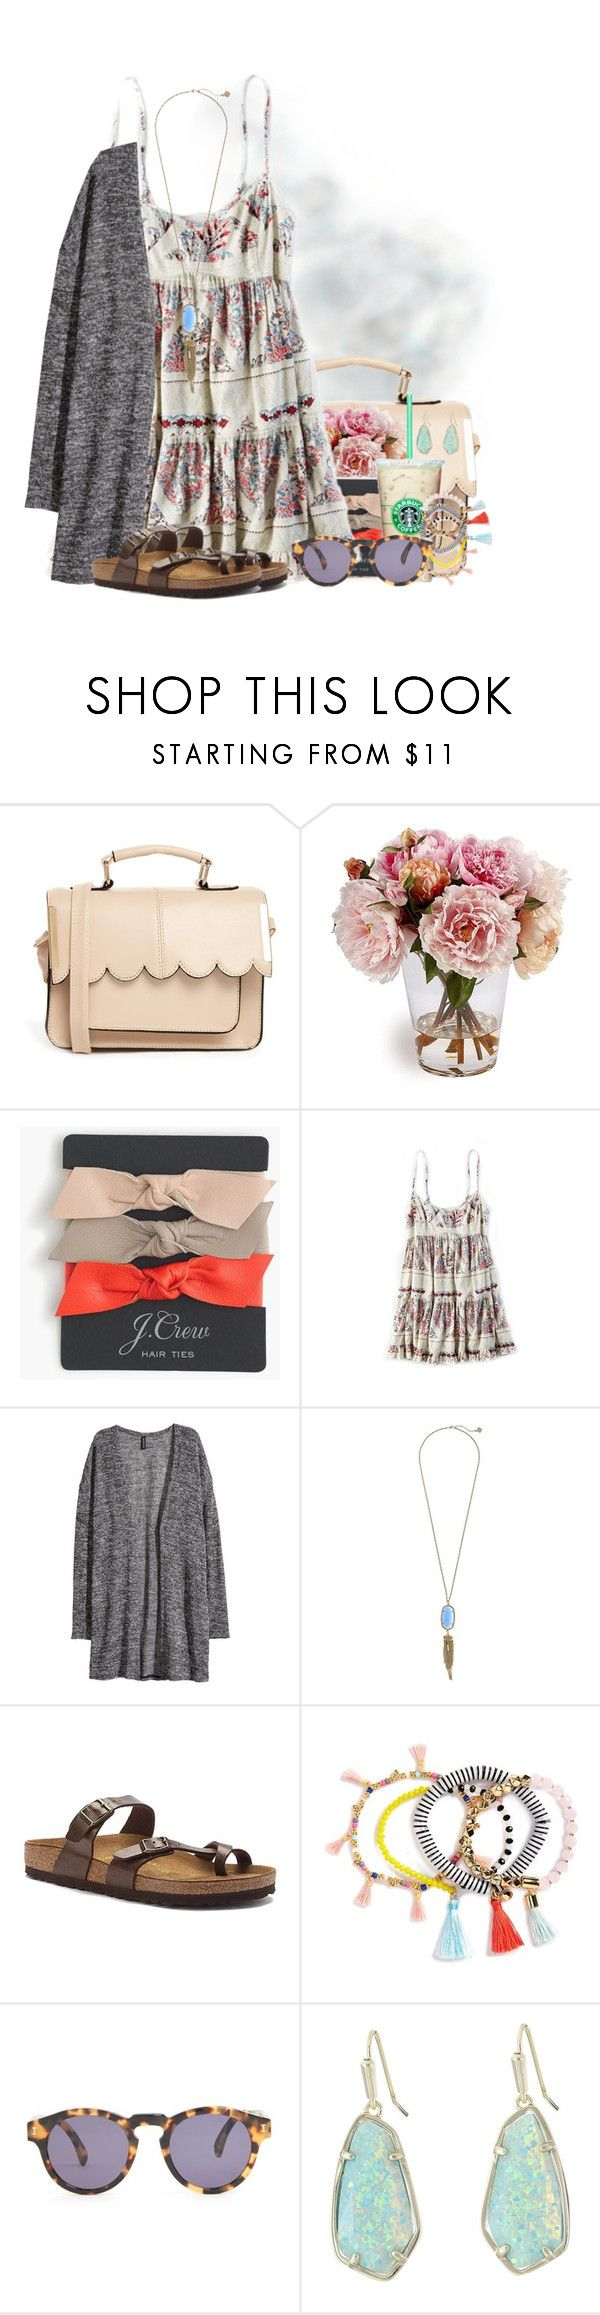 """Recreating one of my old sets☁️"" by flroasburn ❤ liked on Polyvore featuring ASOS, J.Crew, American Eagle Outfitters, H&M, Kendra Scott, Birkenstock, BaubleBar and Illesteva"